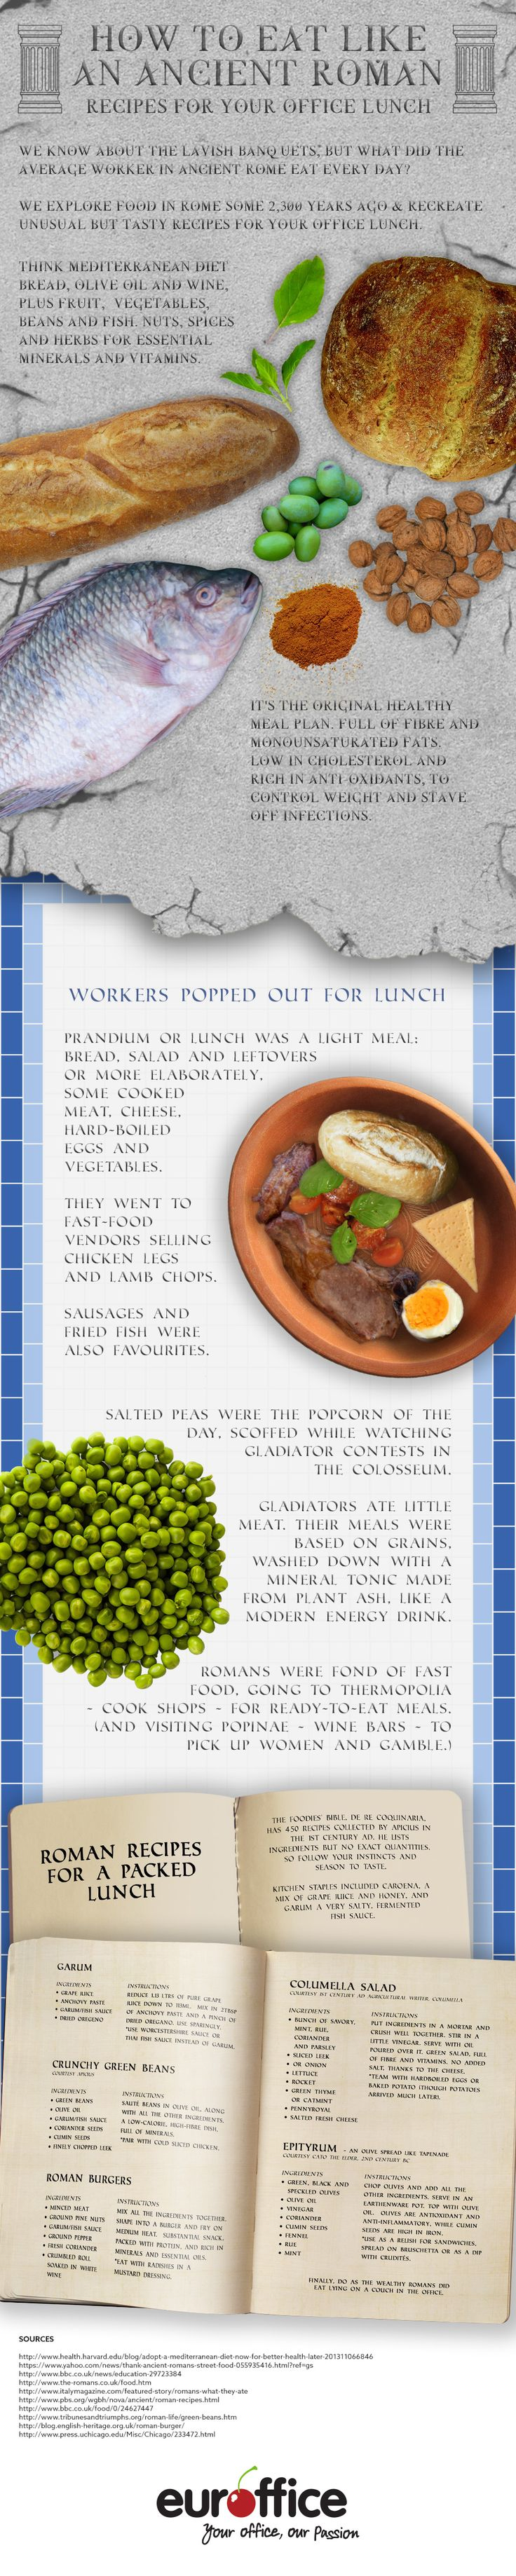 175 best great civilizations images on pinterest history history interesting ancient roman recipes for your office lunch infographic forumfinder Gallery